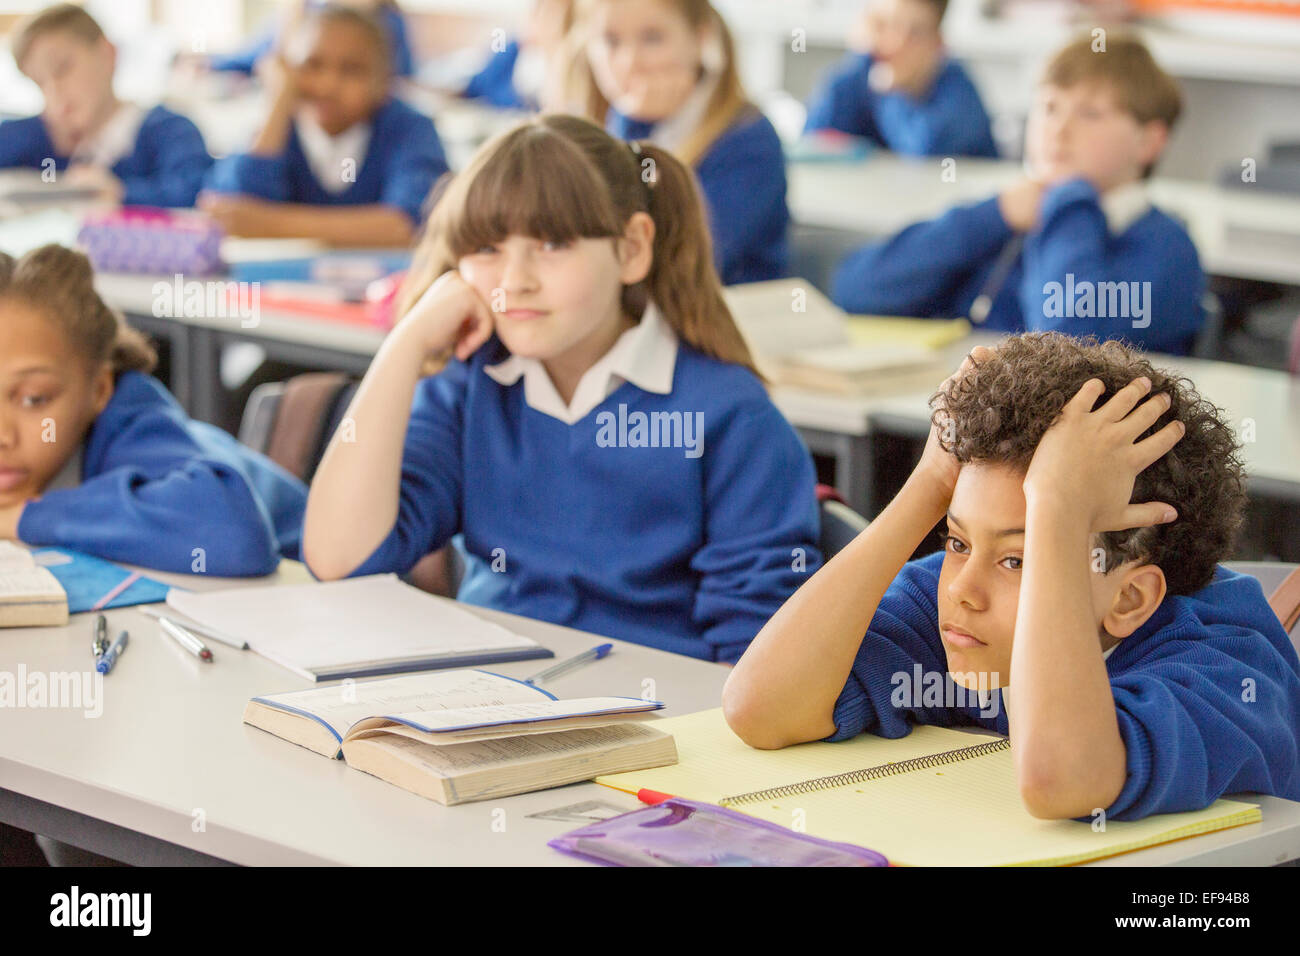 Elementary school children bored in classroom - Stock Image